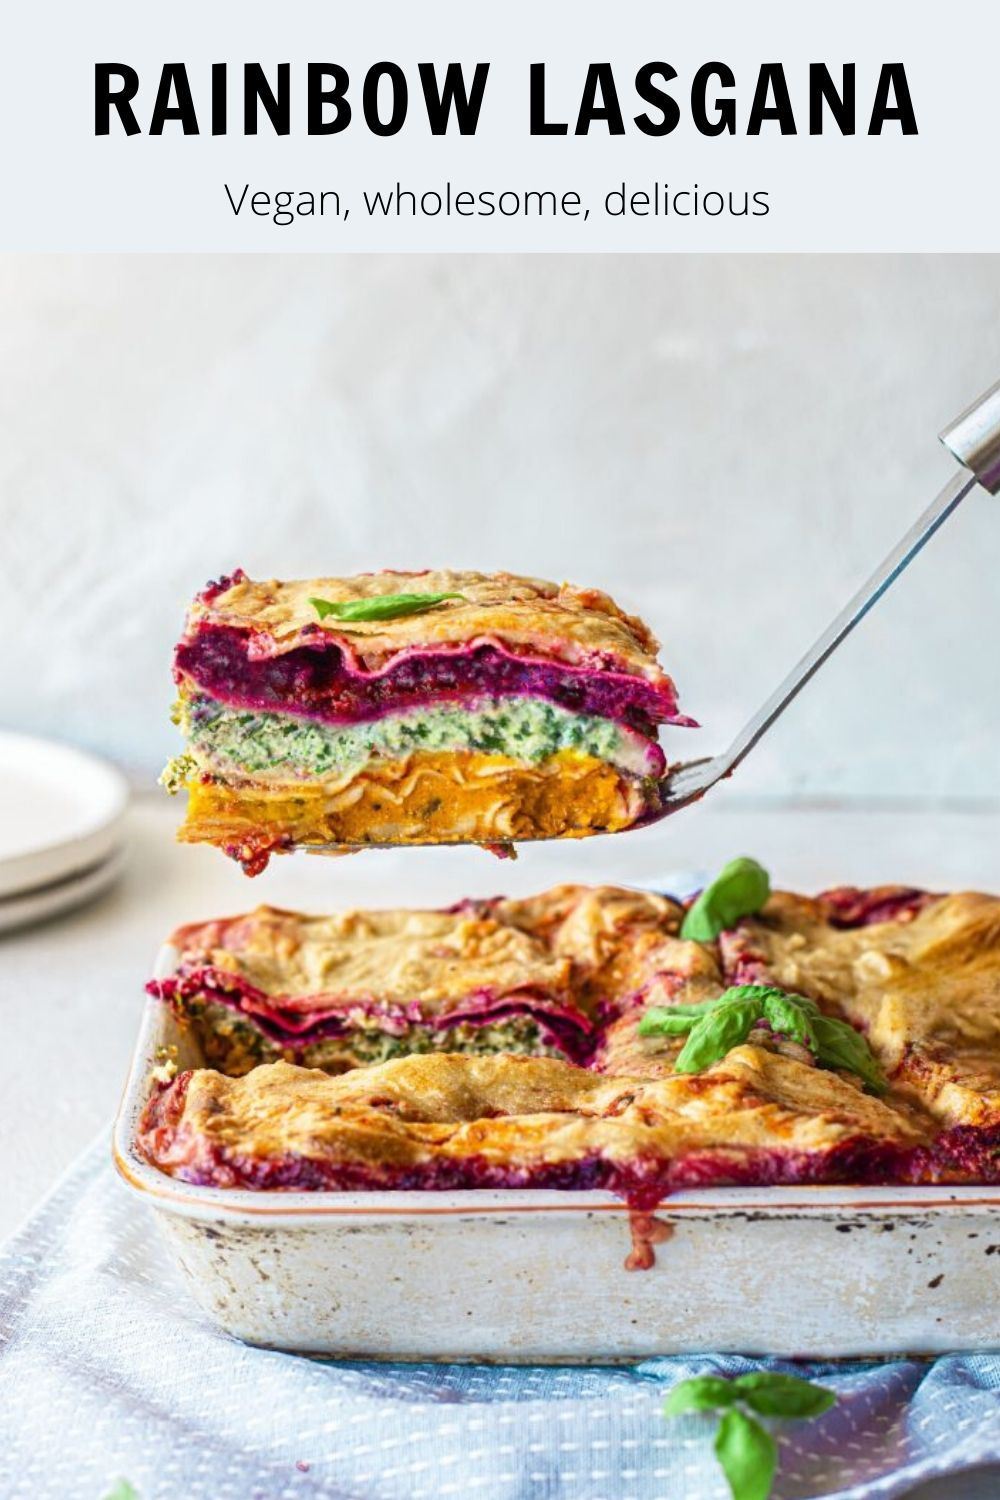 Vegan comfort food packed with veggies, is wholesome and healthy. The colours makes it the perfect dinner centrepiece too!